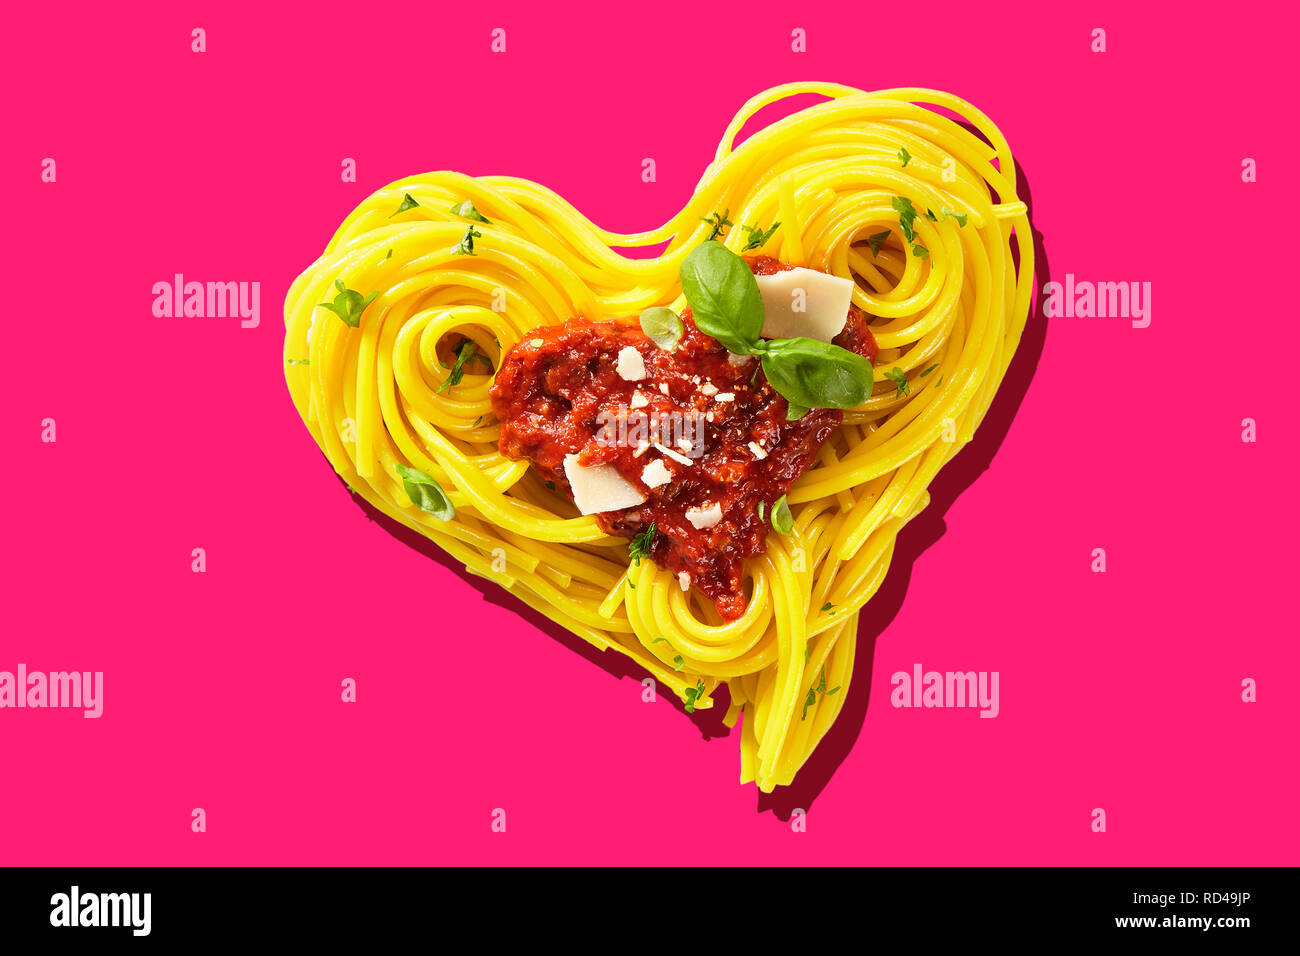 Decorative heart-shaped Italian pasta portion, formed of cooked spaghetti, topped with tomatoes, basil, and parmesan cheese, viewed in close-up, from  - Stock Image